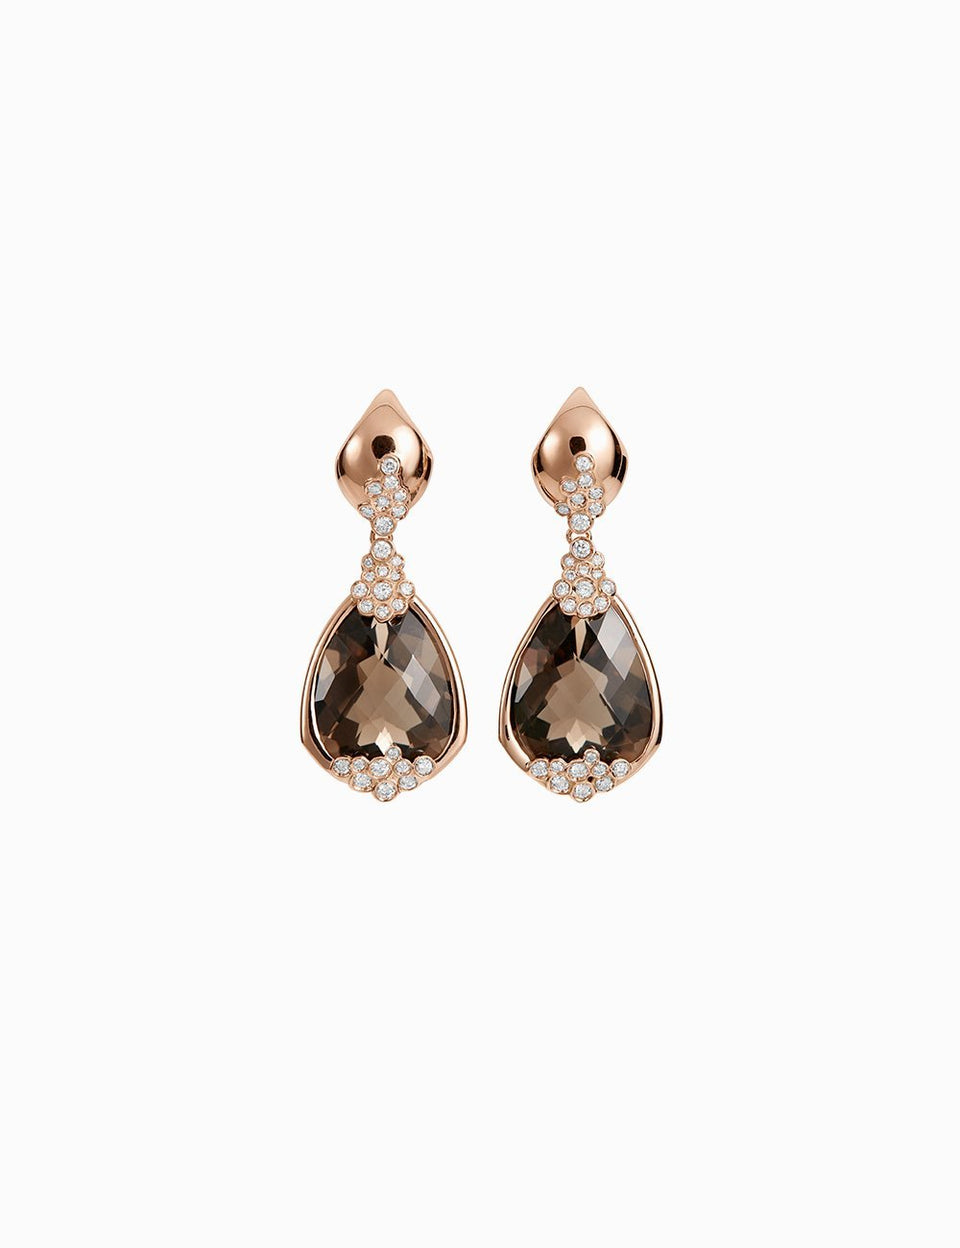 Roosik&Co - Blossom Earrings - Pink Gold, Fuming Quartz and Diamonds